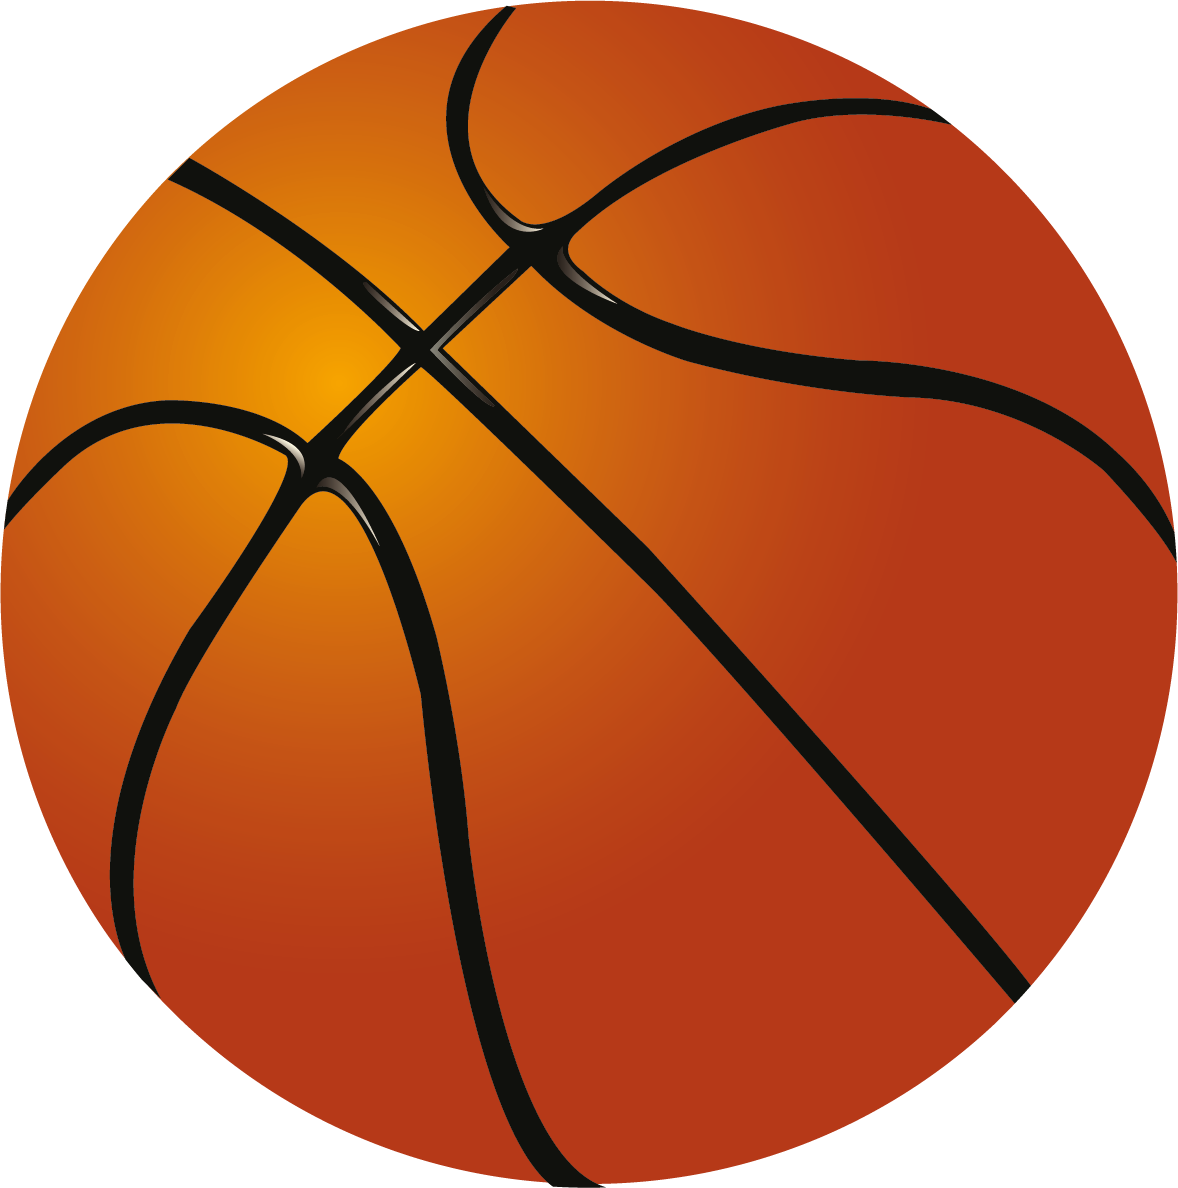 hight resolution of basketball clipart clipart panda free clipart images